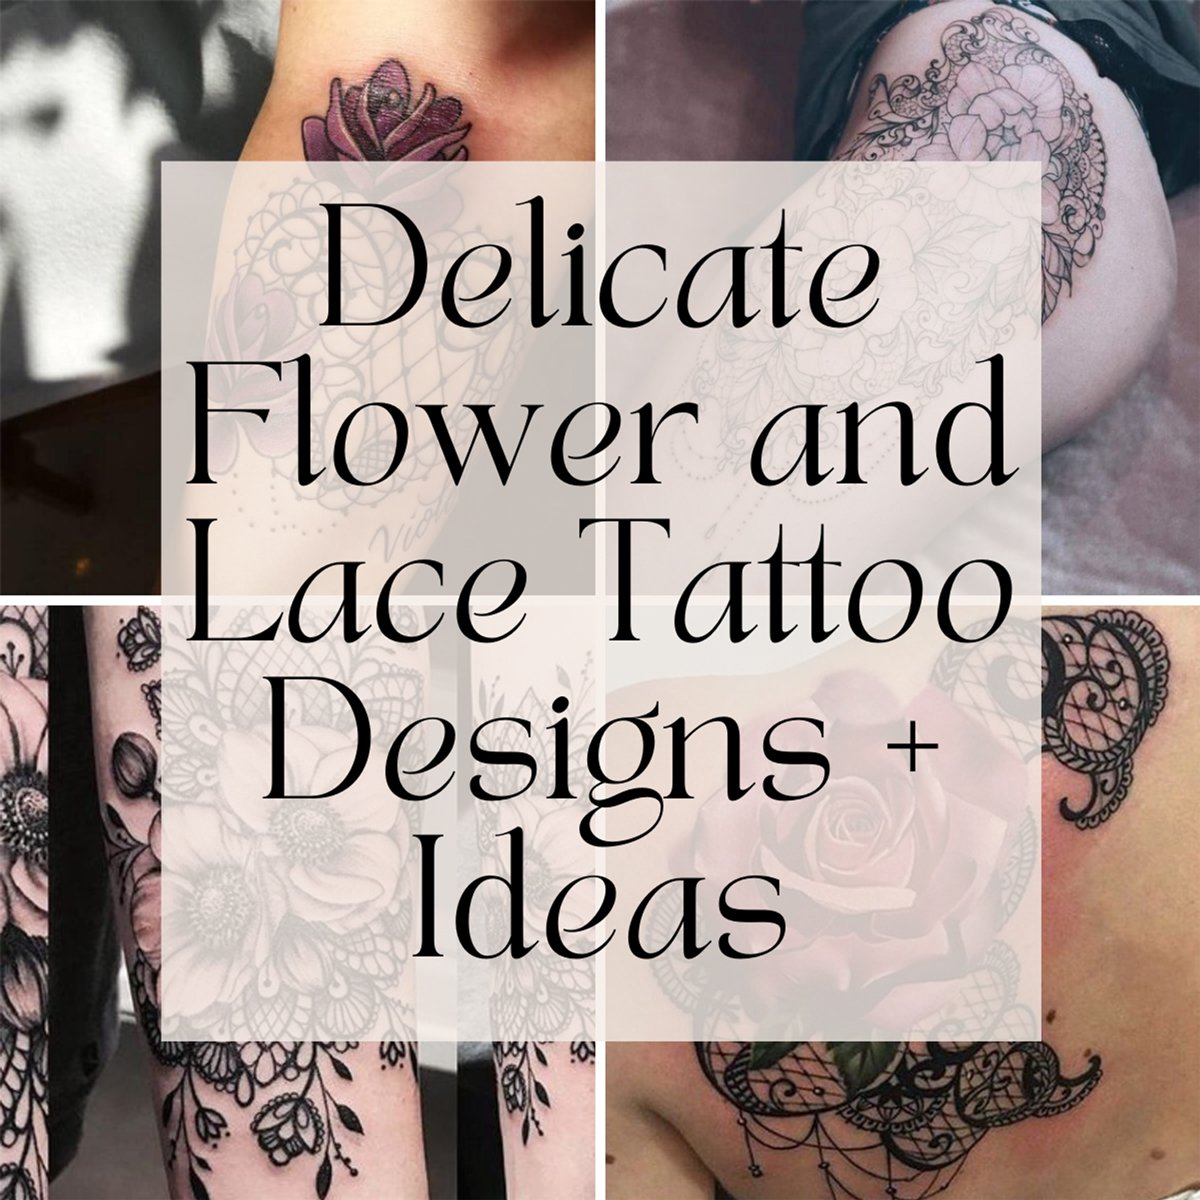 Flower and lave tattoo designs